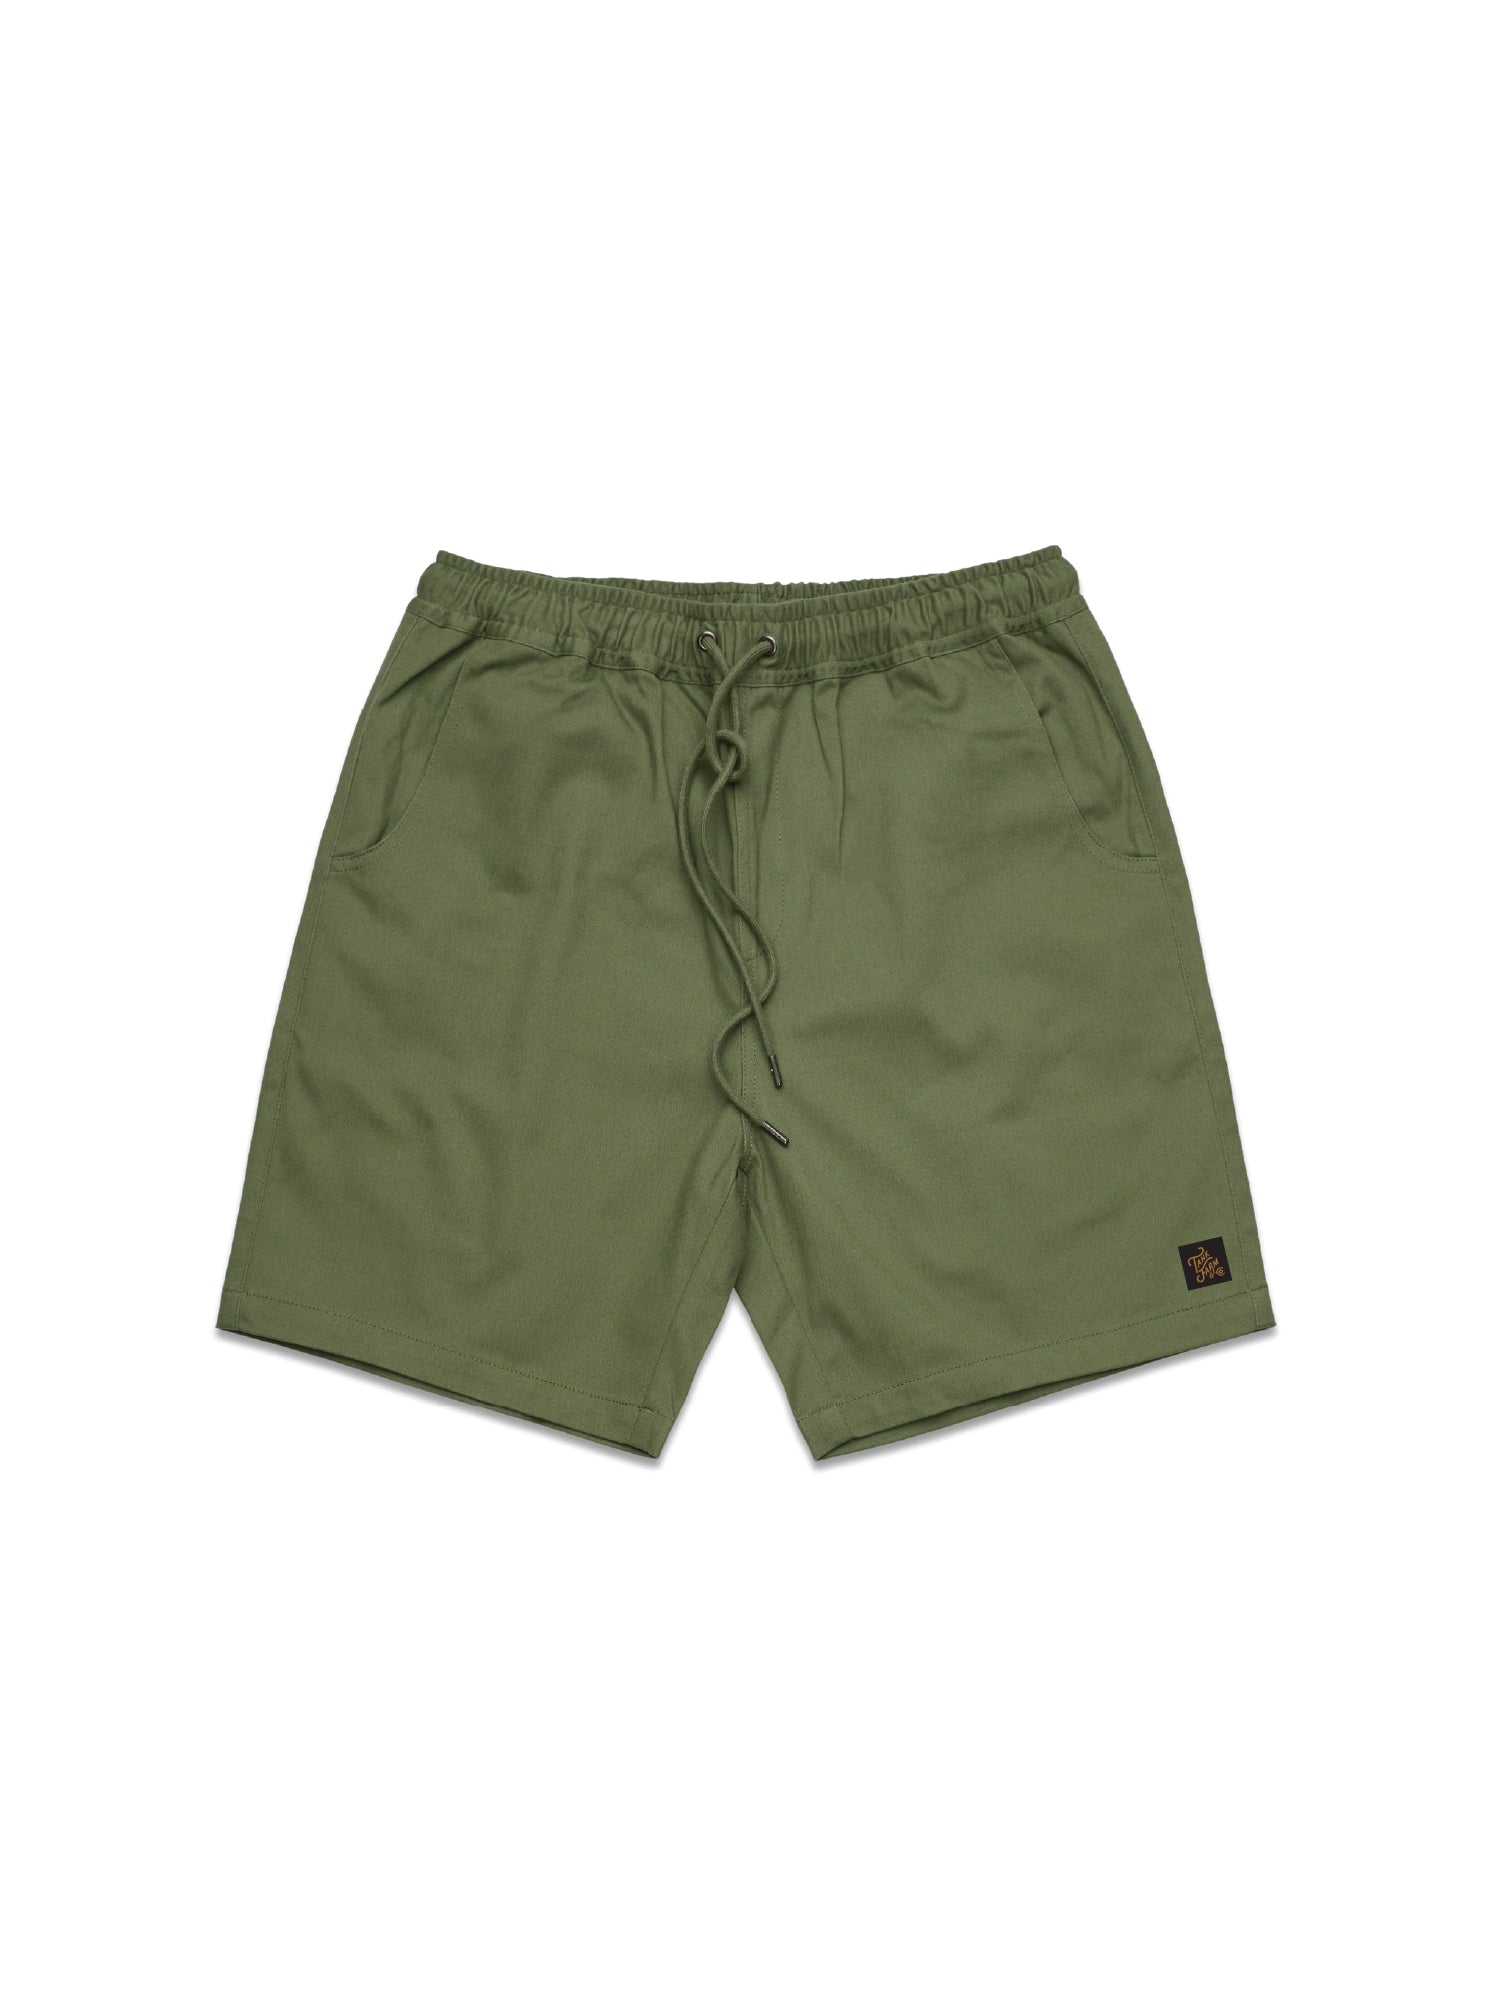 THE WALK SHORTS- ARMY - Tankfarm & Co.